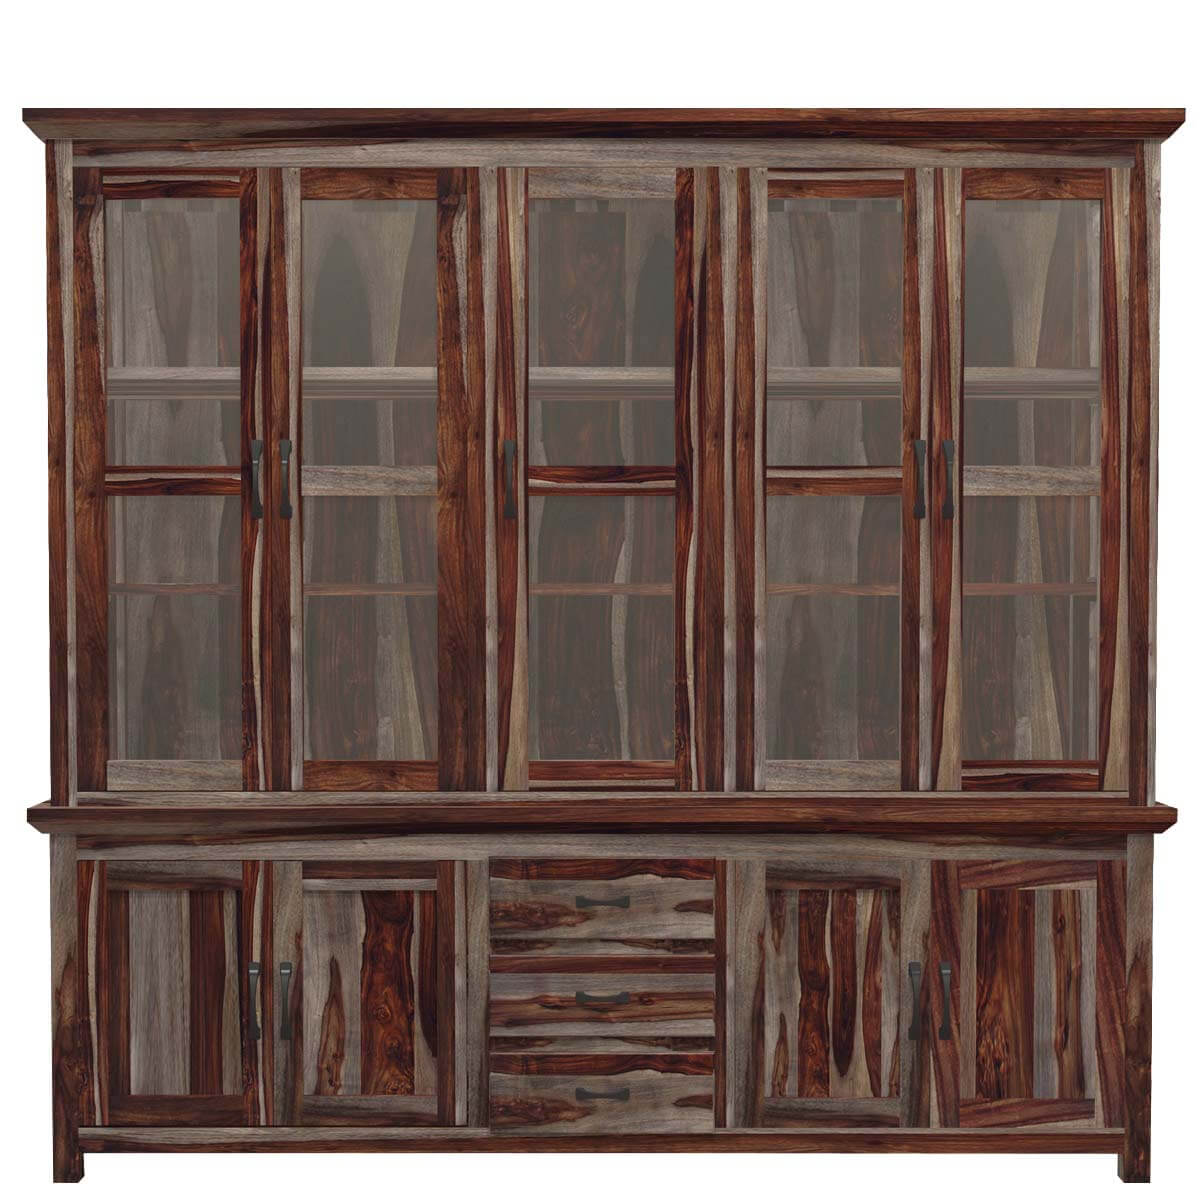 Dallas ranch rustic solid wood glass door dining china hutch for Solid wood door with glass